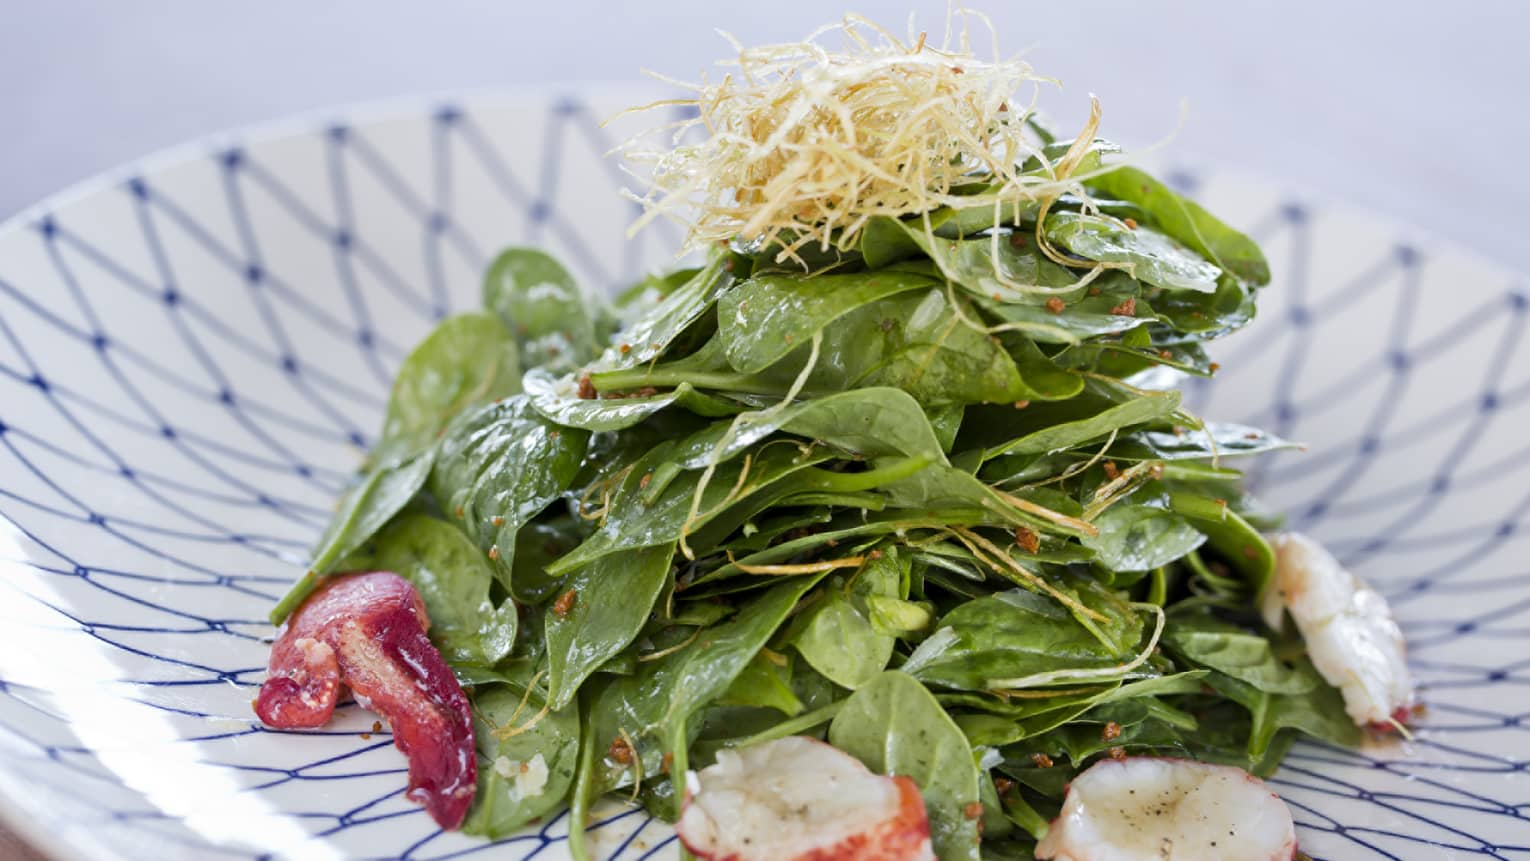 Close-up of Brittany Lobster and Baby Spinach Salad on blue and white patterned dish